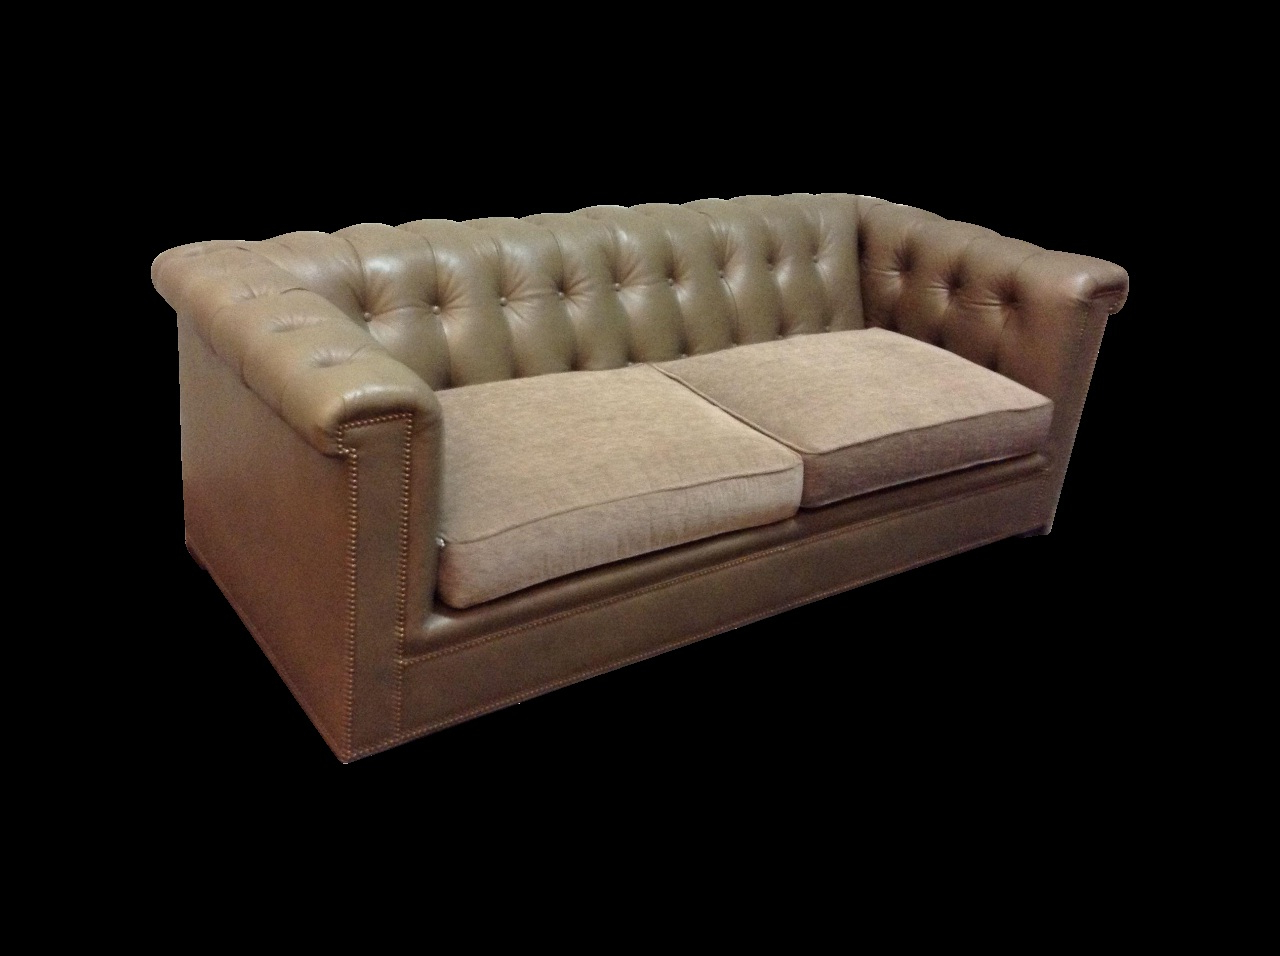 Most Recently Released Walter Leather Sofa Fresh Hickory Chair Kent Tufted Leather Sofa On With Walter Leather Sofa Chairs (View 5 of 20)